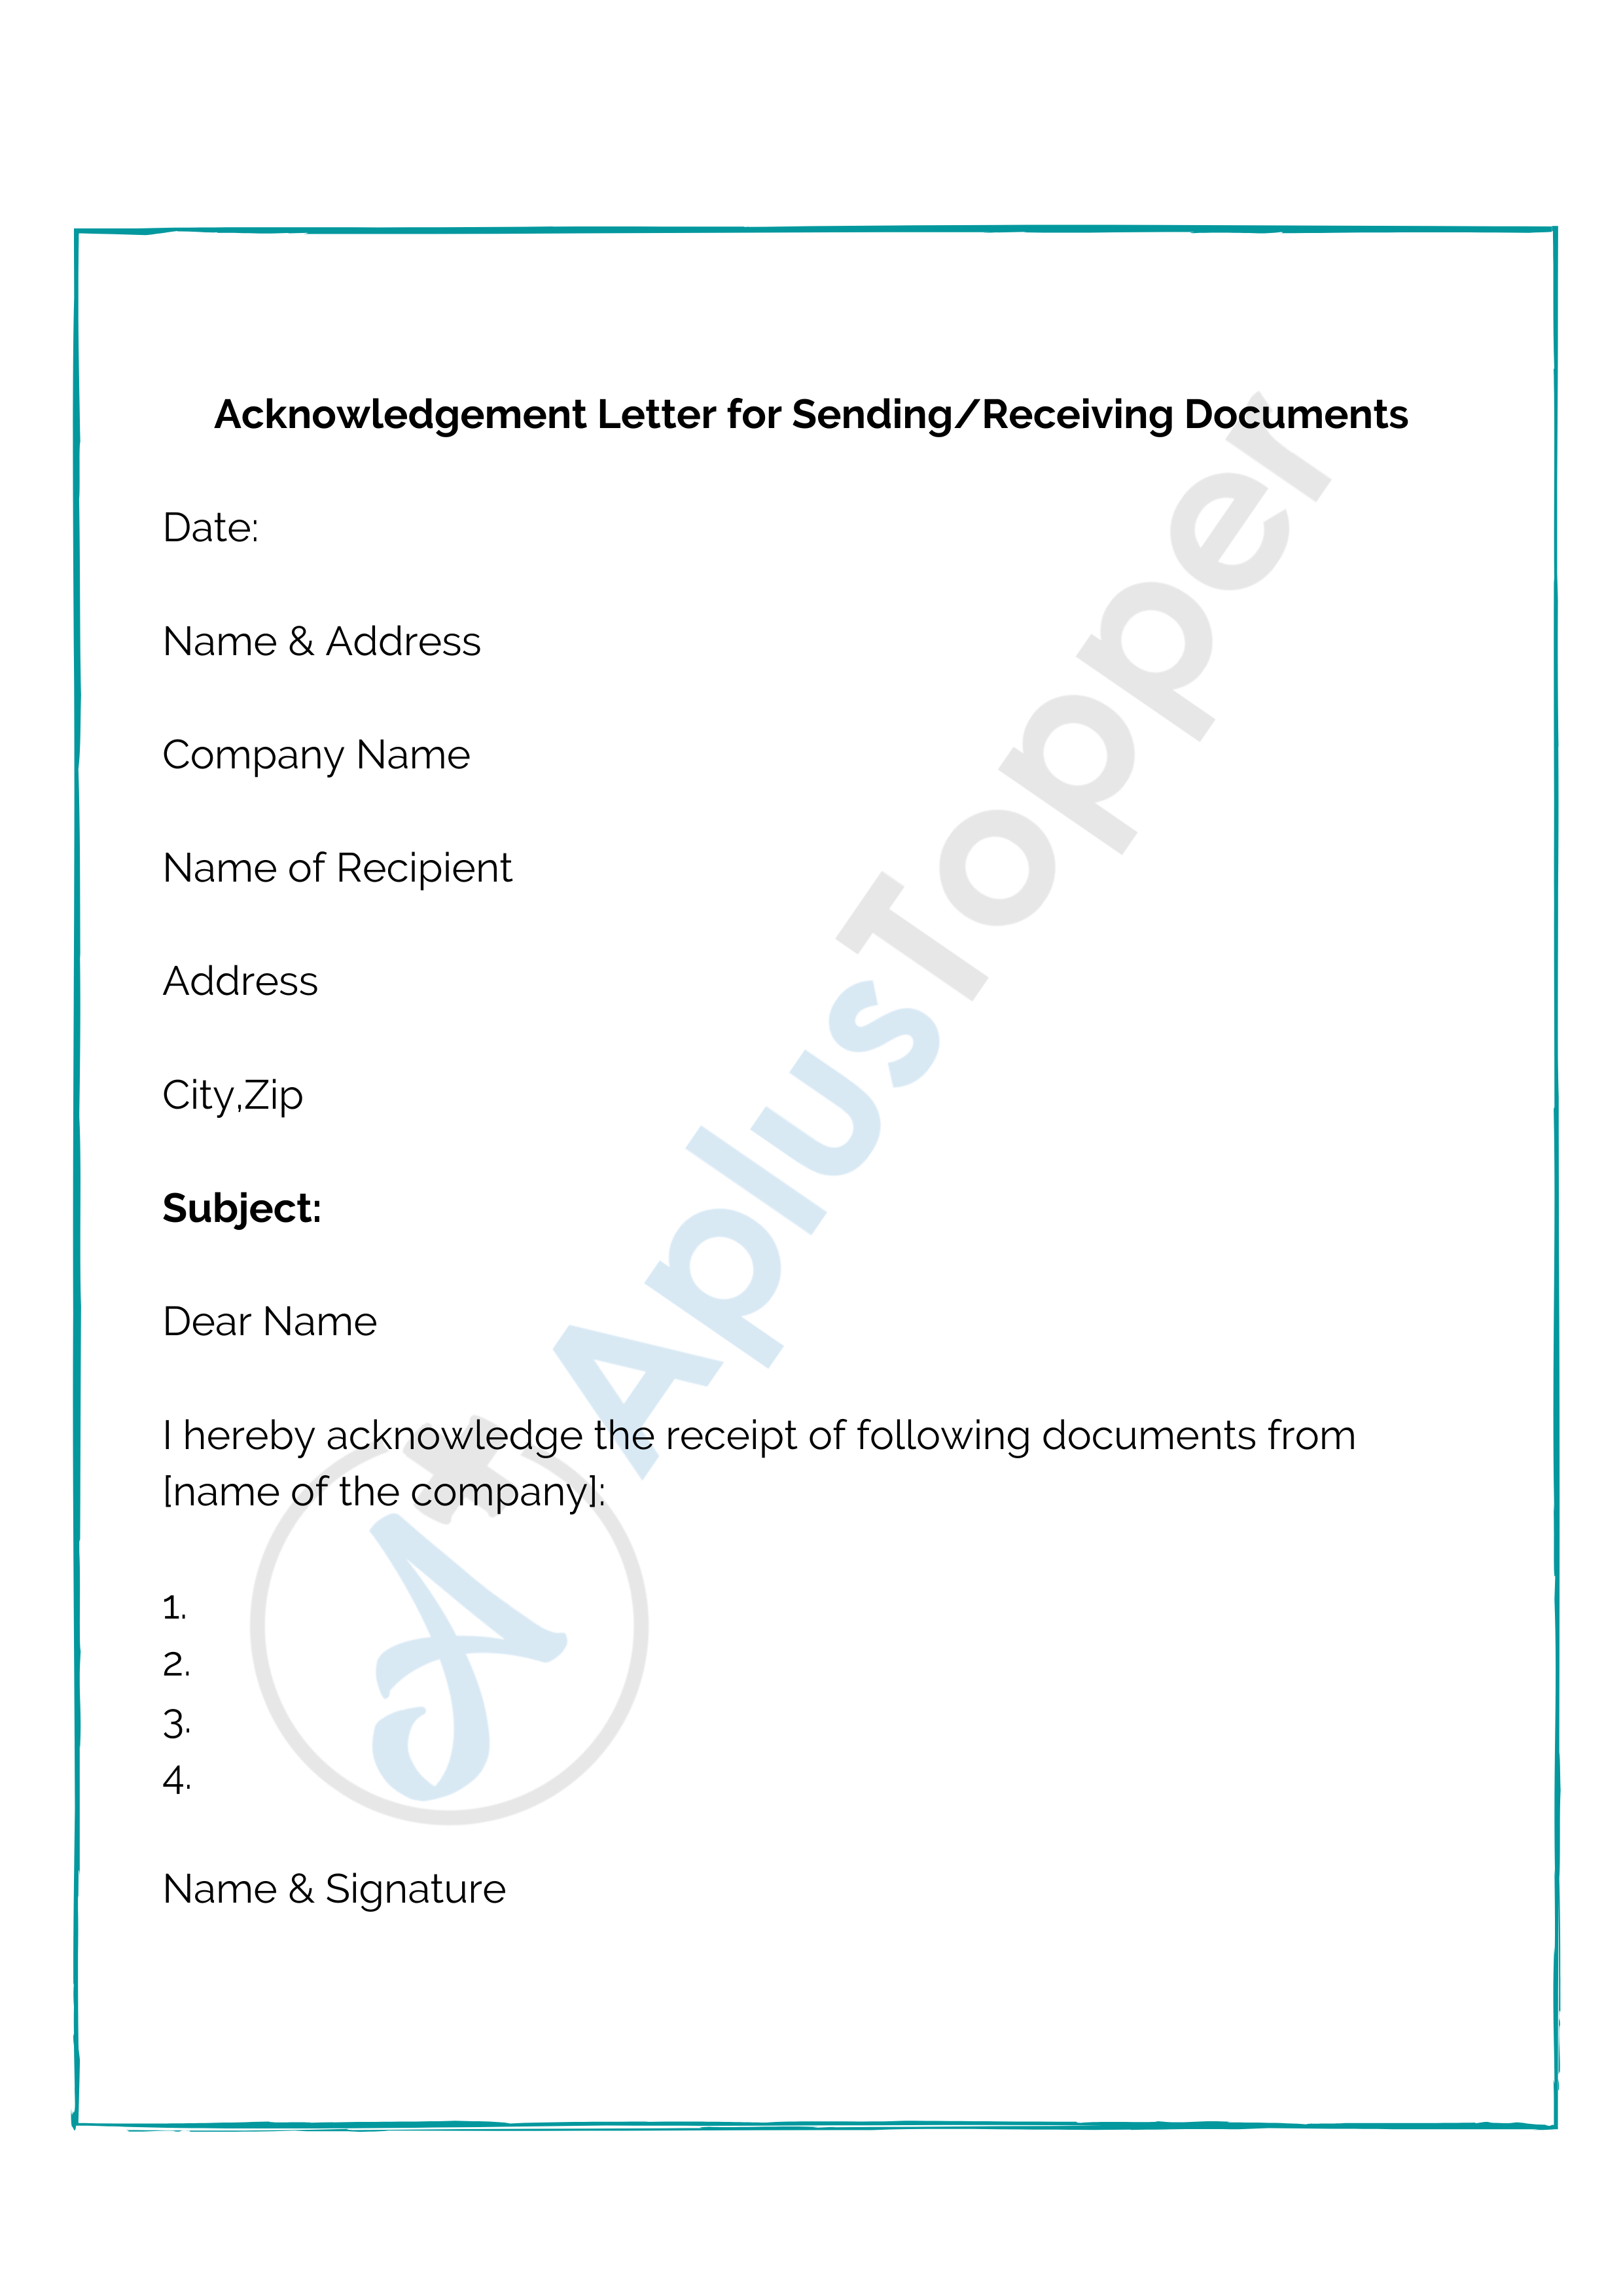 Acknowledgement of Receipt of Documents